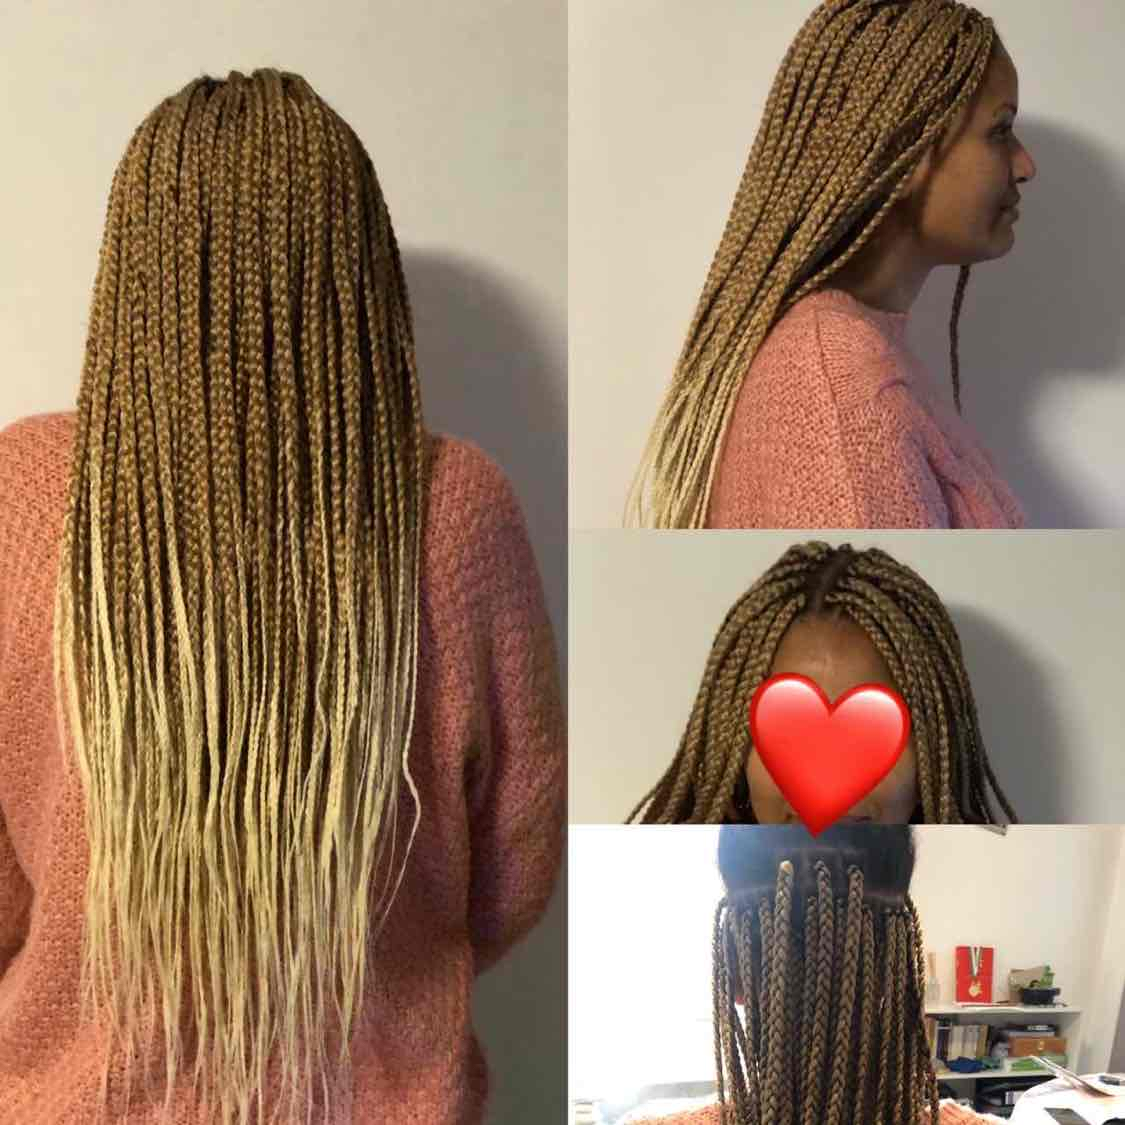 salon de coiffure afro tresse tresses box braids crochet braids vanilles tissages paris 75 77 78 91 92 93 94 95 LMARCVJD